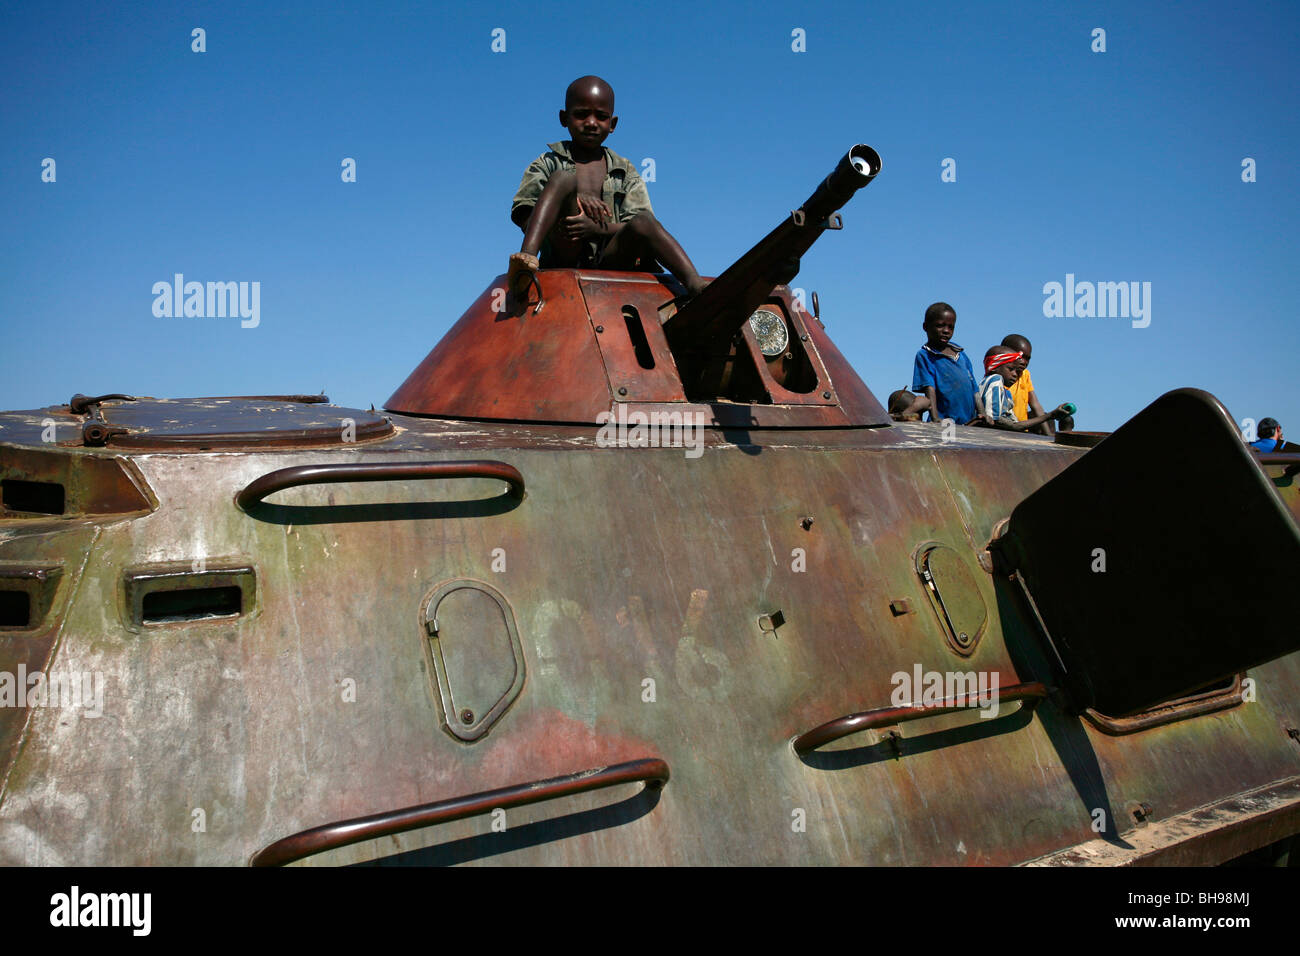 Children play on an old tank on a former battle field at Cuito Cuanavale, South Eastern Angola, Africa. - Stock Image